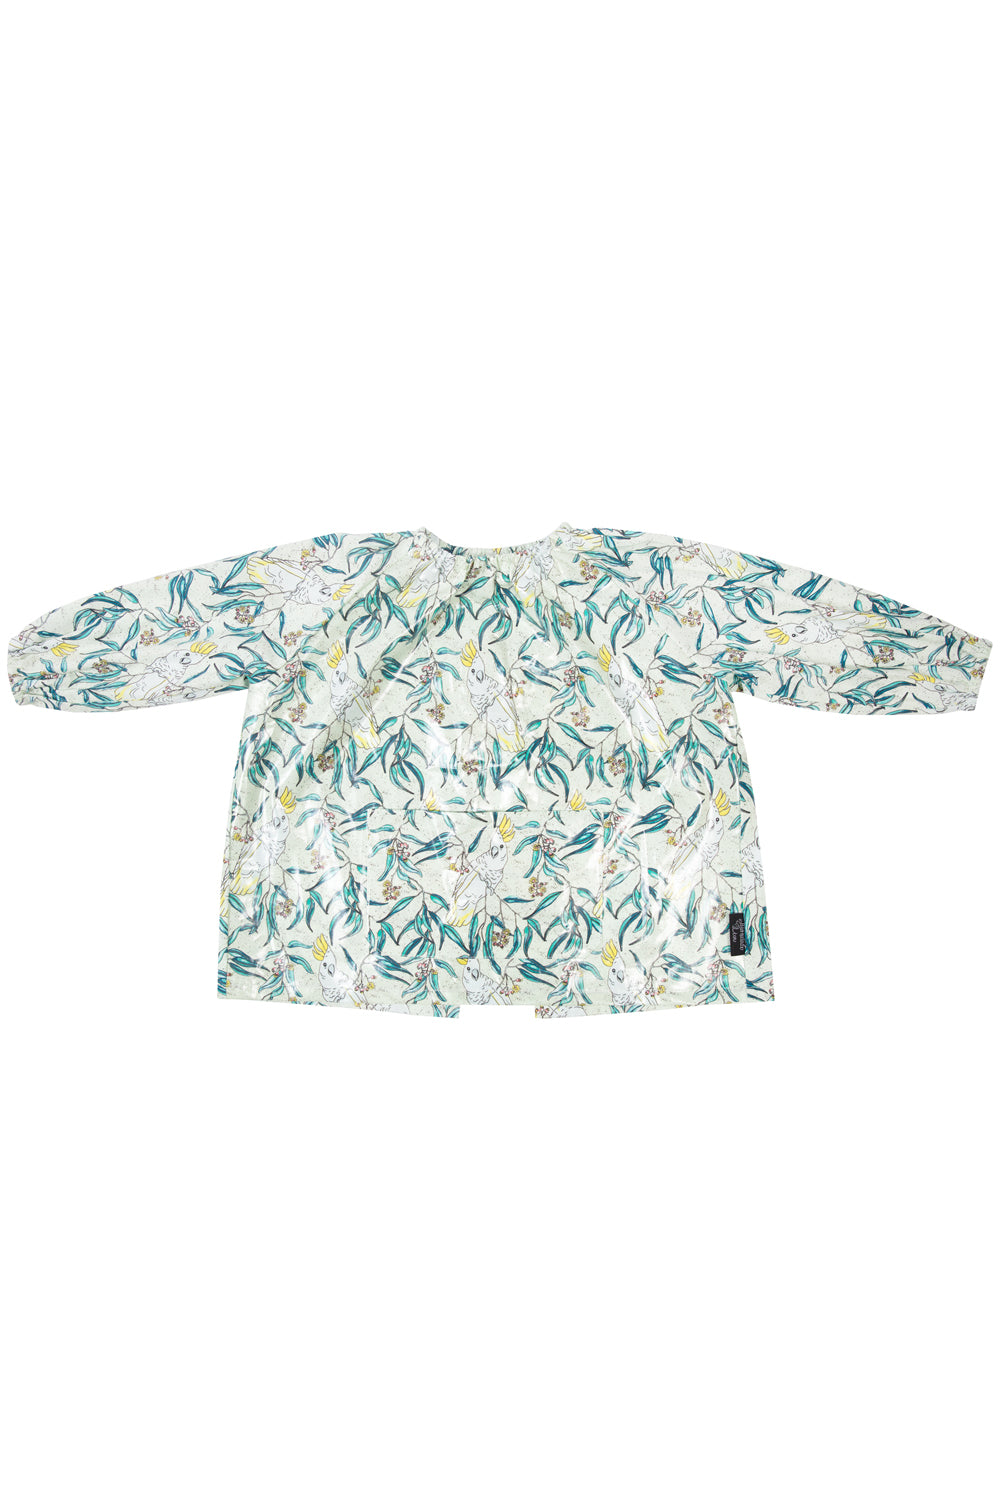 Cockatoo Art Smock